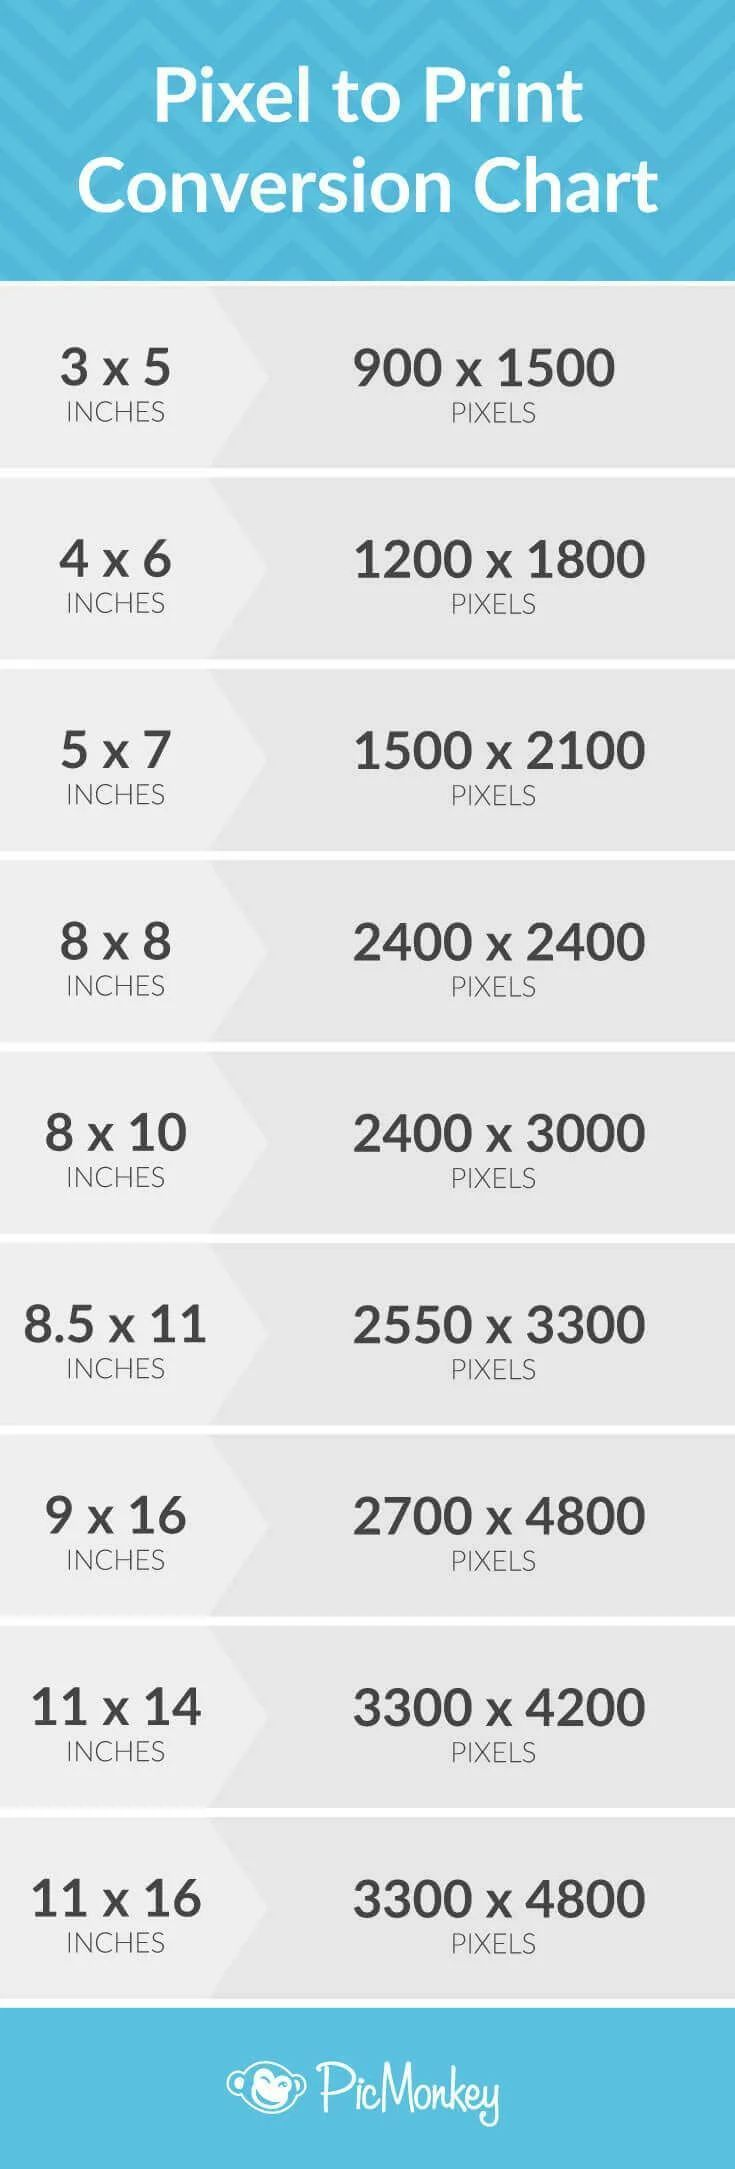 Photography Cheat Sheet: How Many Megapixels Do You Need to Print?